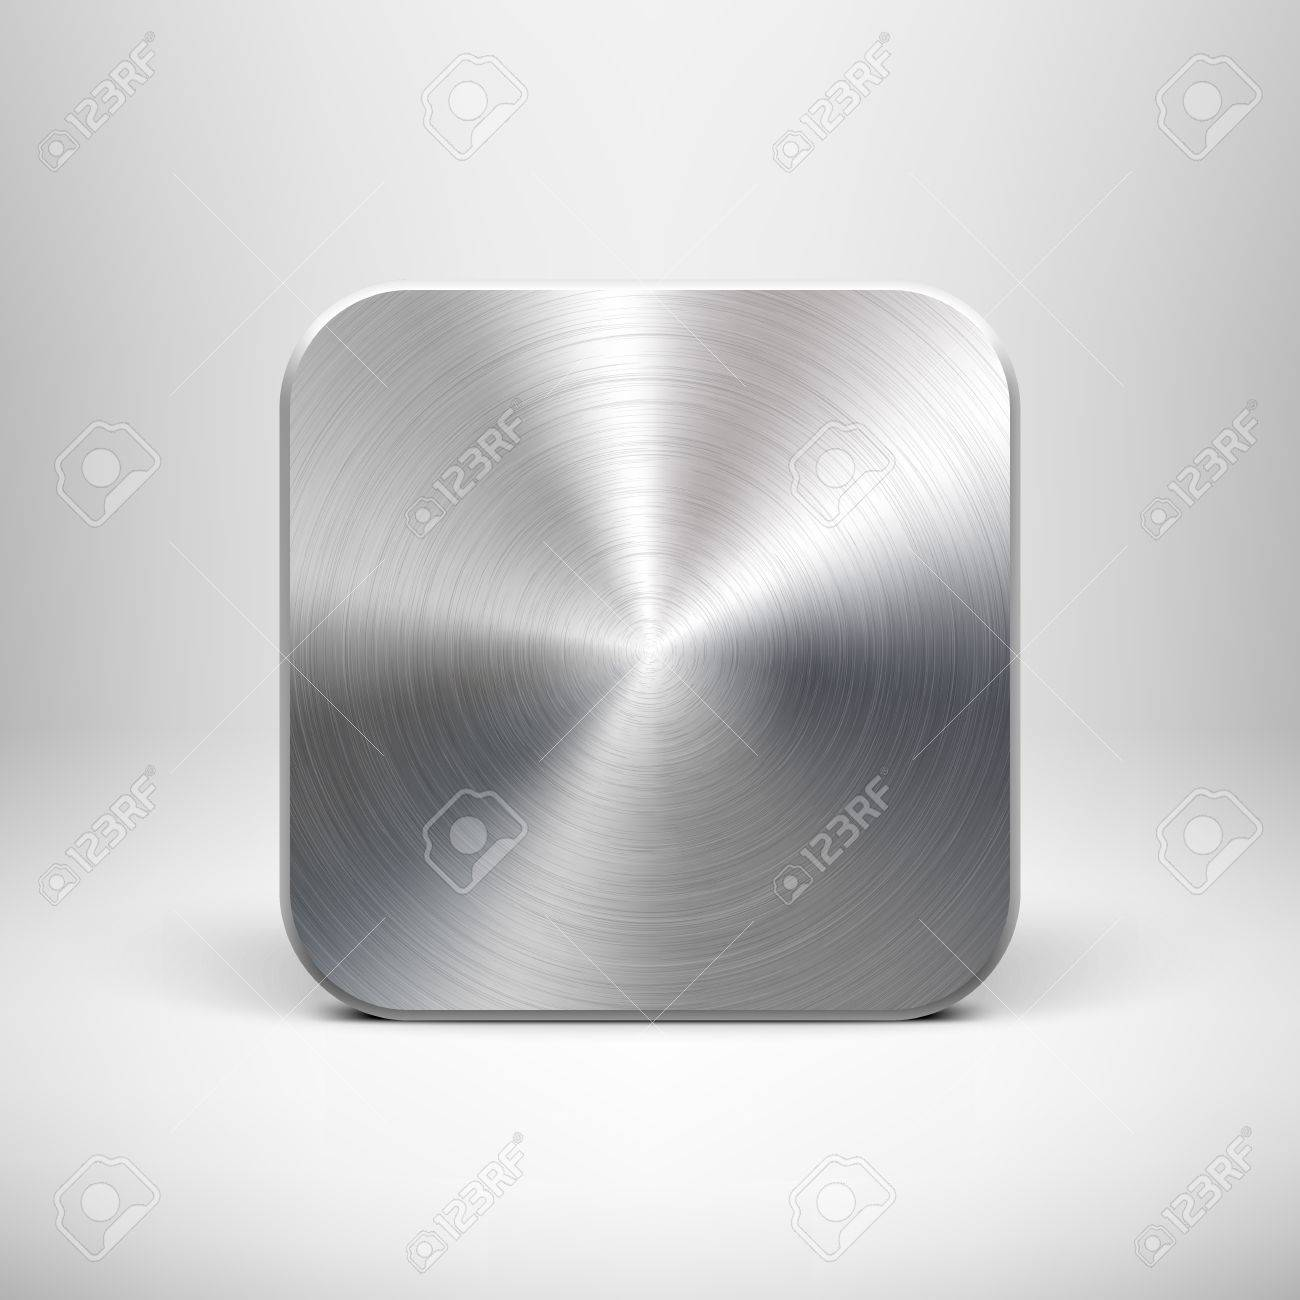 Technology Blank App Icon Button Template With Metal Texture ...